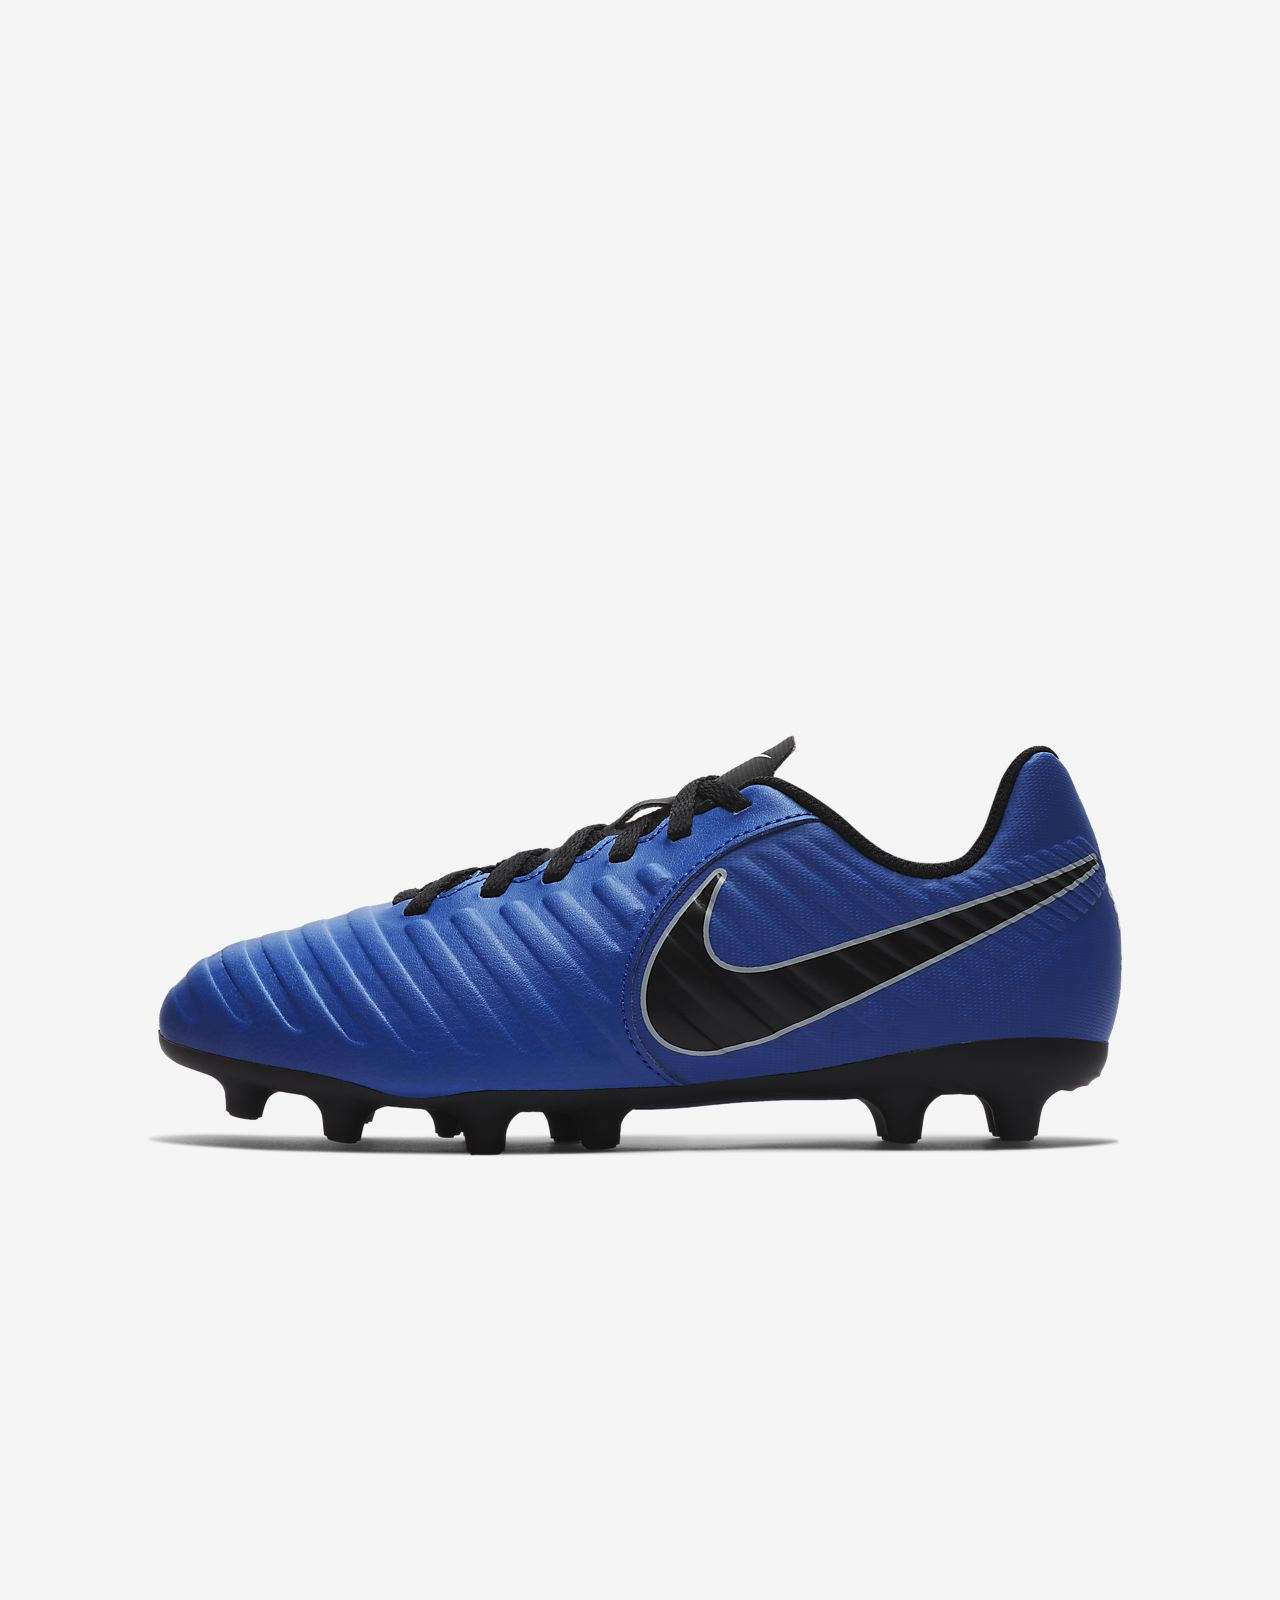 san francisco 13ff0 92c81 ... Nike Jr. Tiempo Legend VII Club Toddler Little Kids  Firm-Ground Soccer